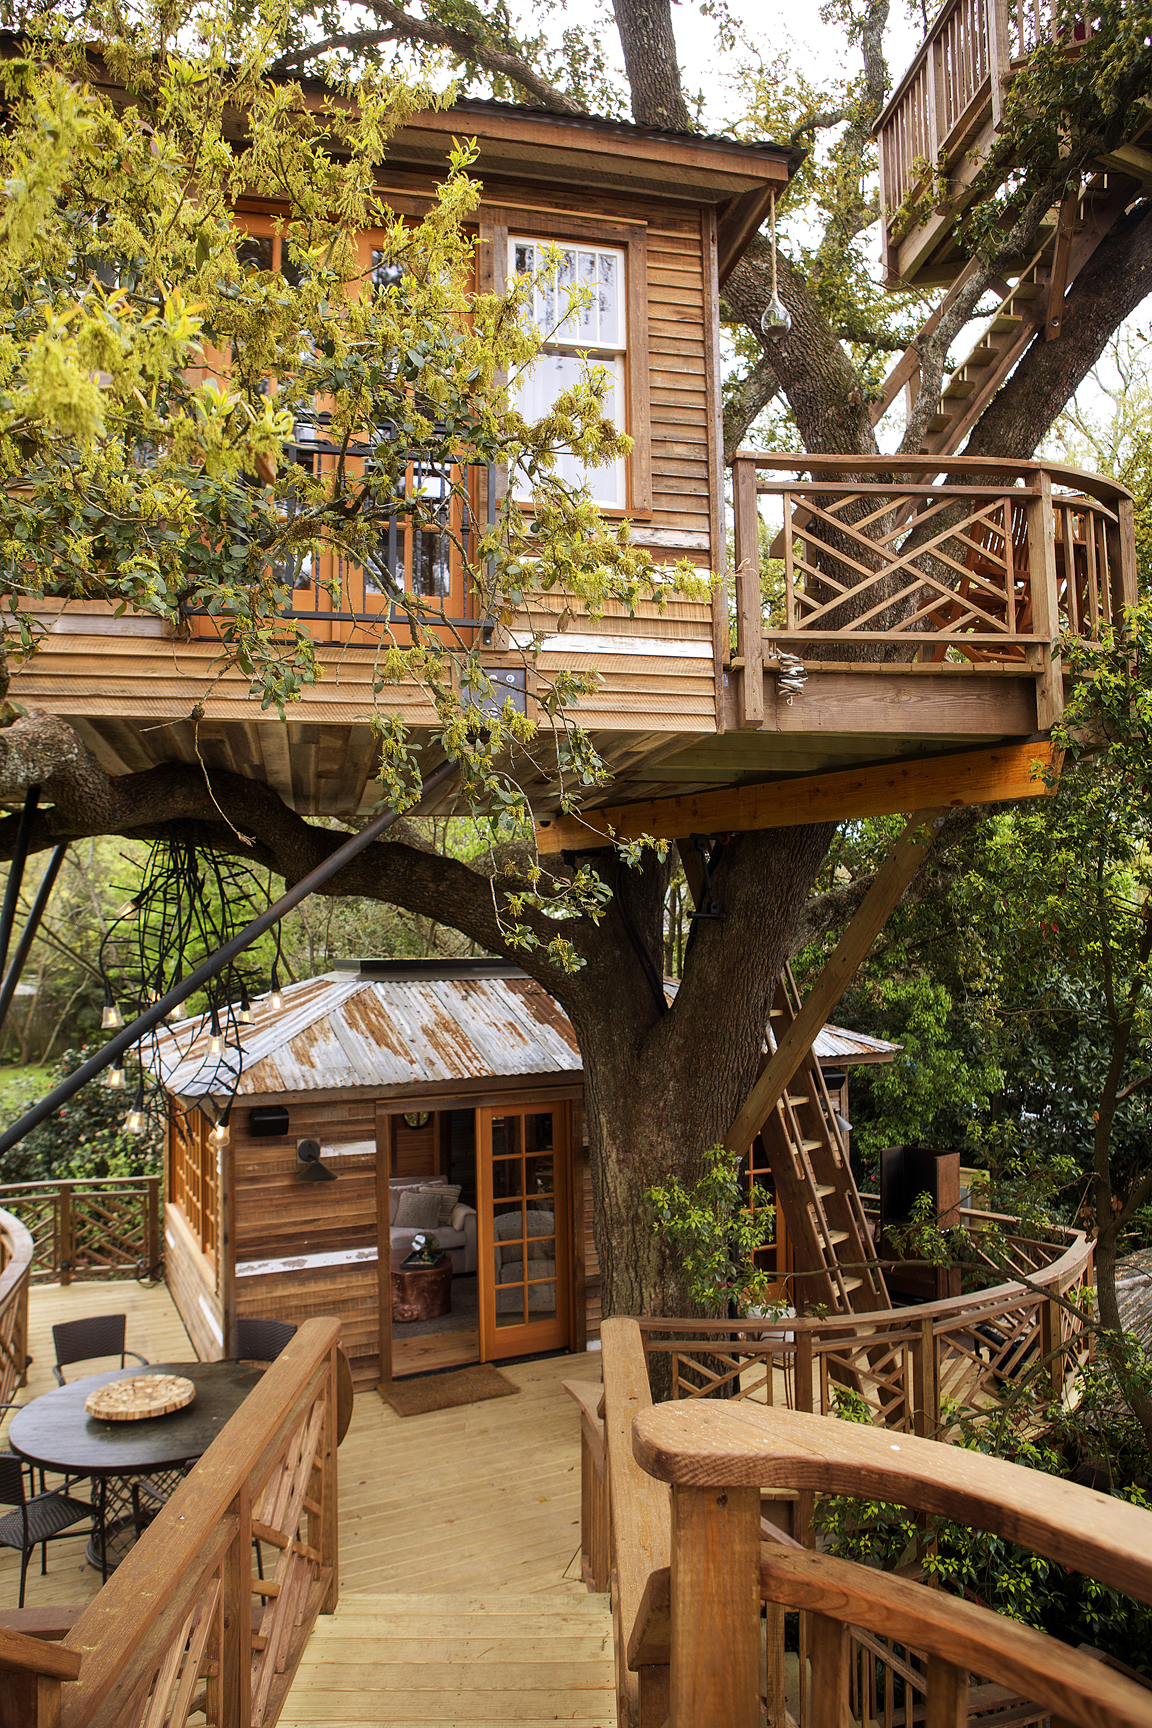 225 Spaces Todd Graves Treehouse, Collin Richie Photo, 3.24.15